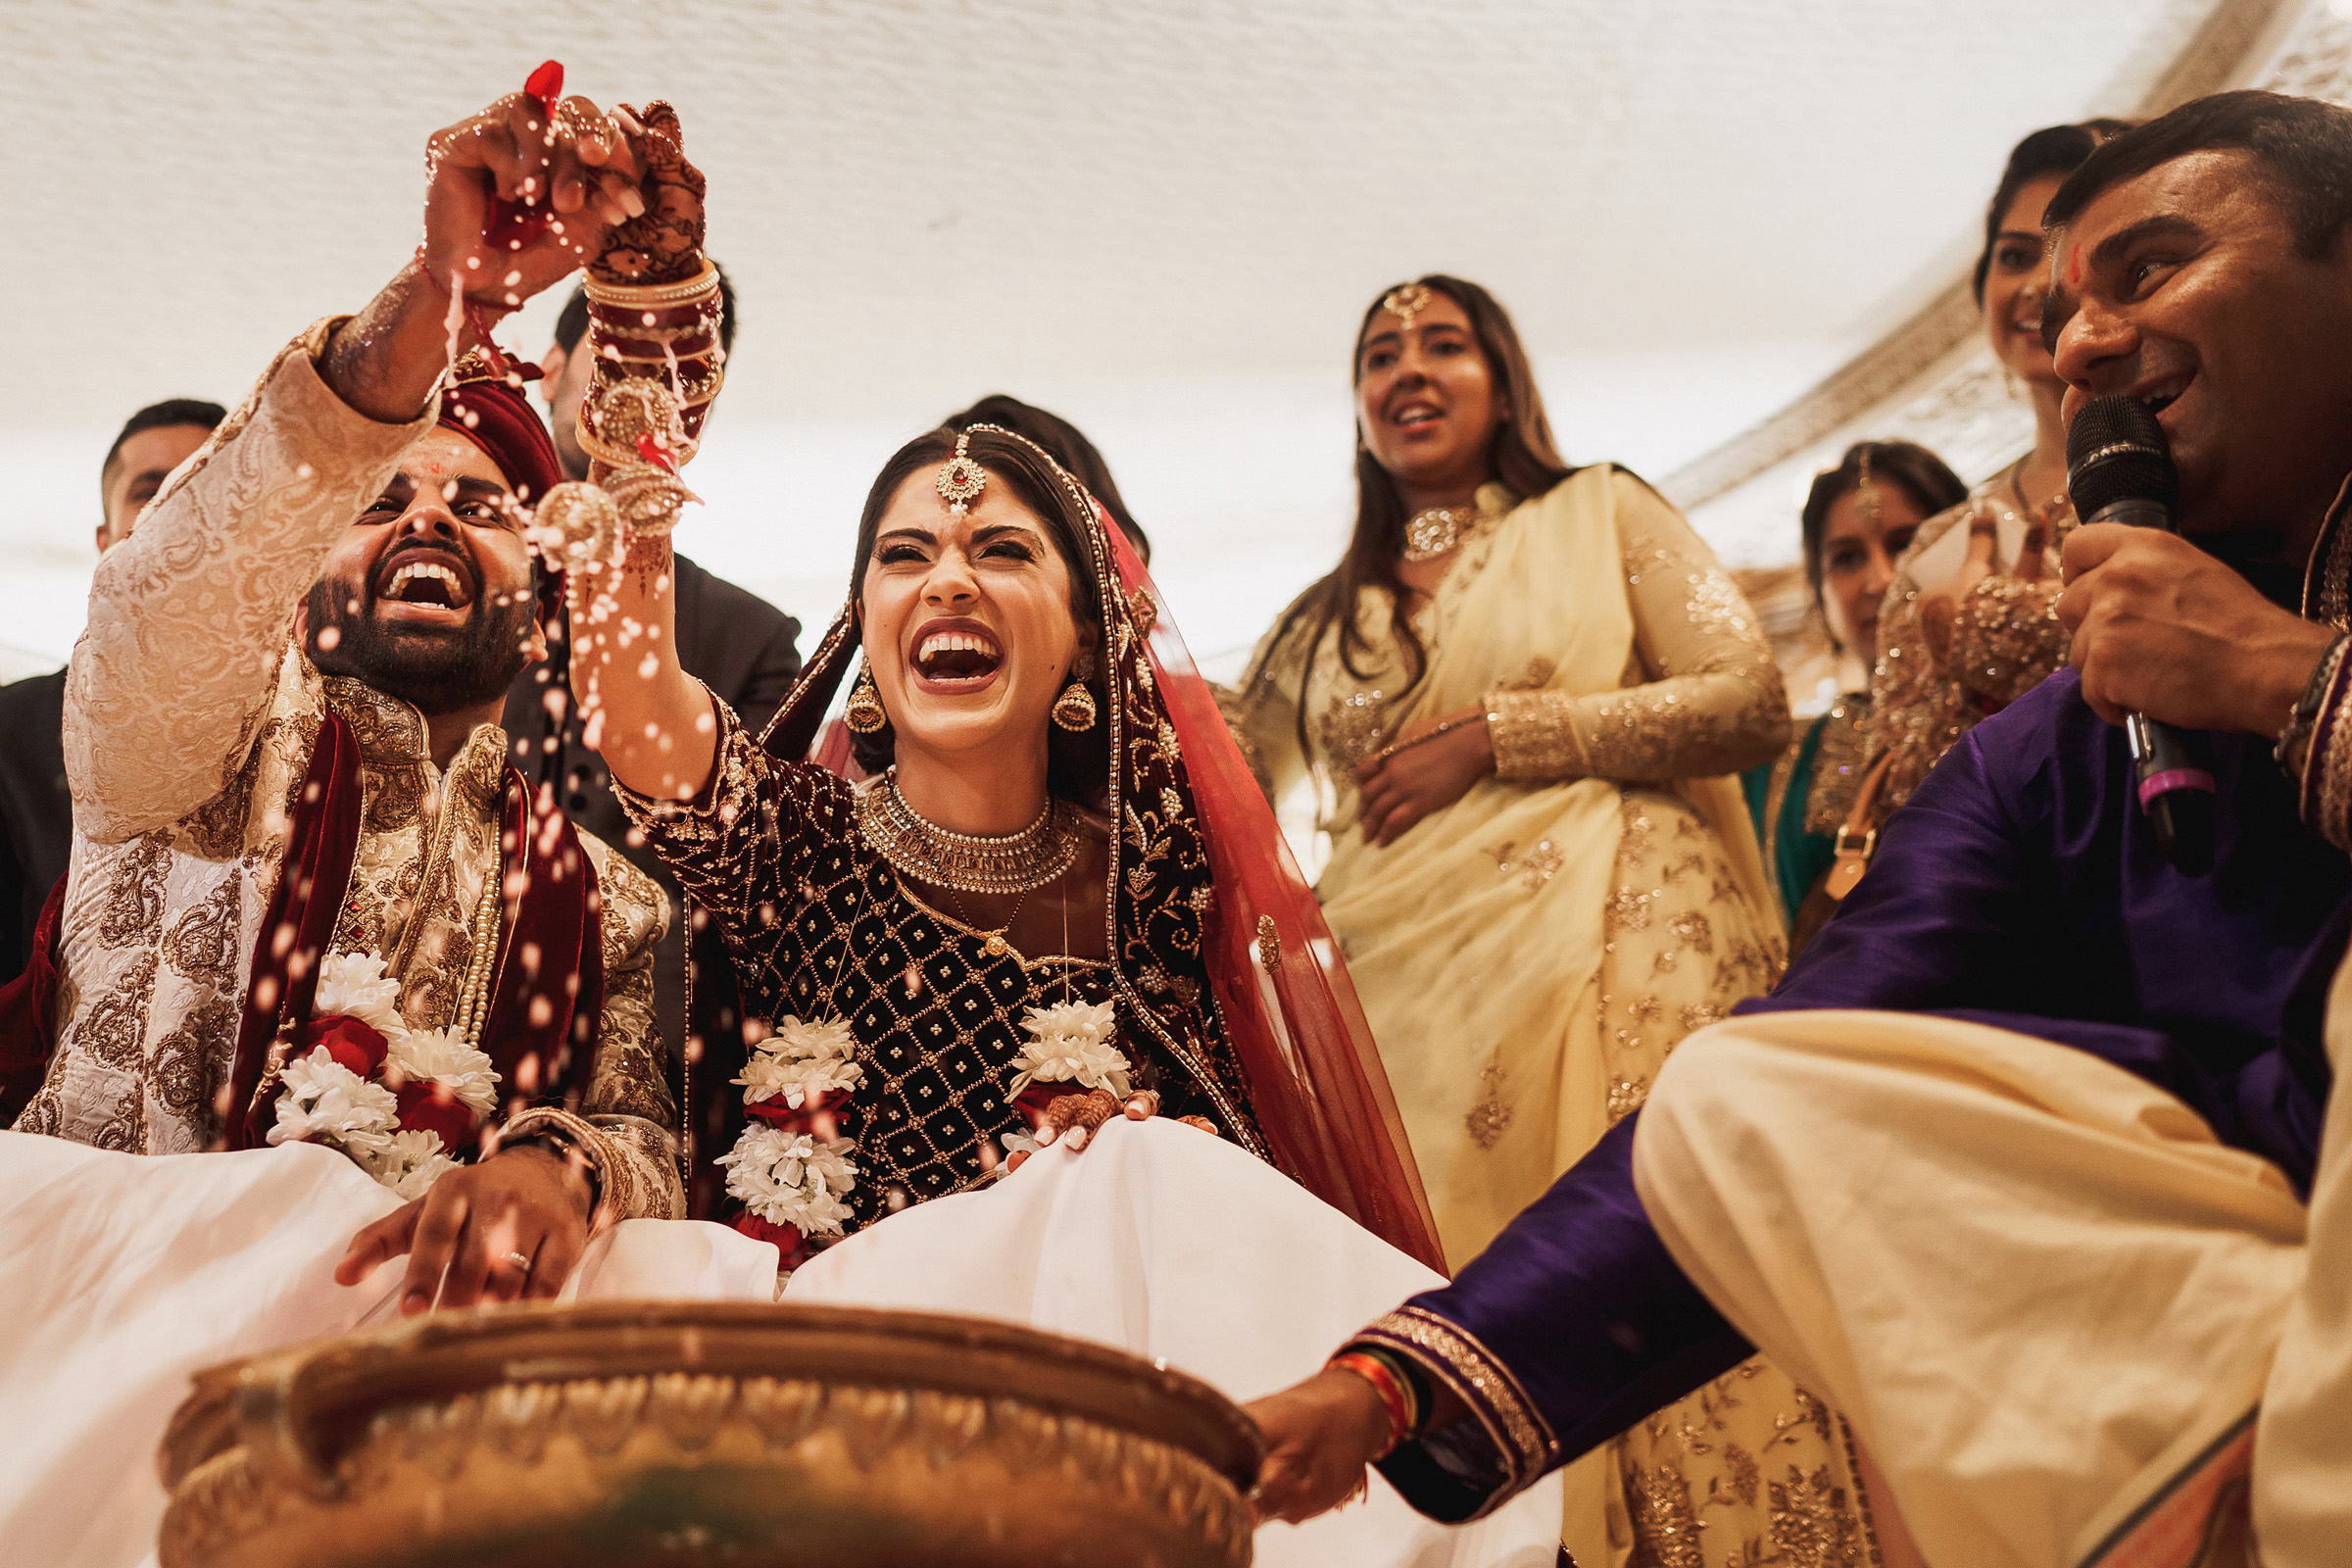 Joyful photo of Indian bride and groom during ceremony by f5 best London wedding photographr